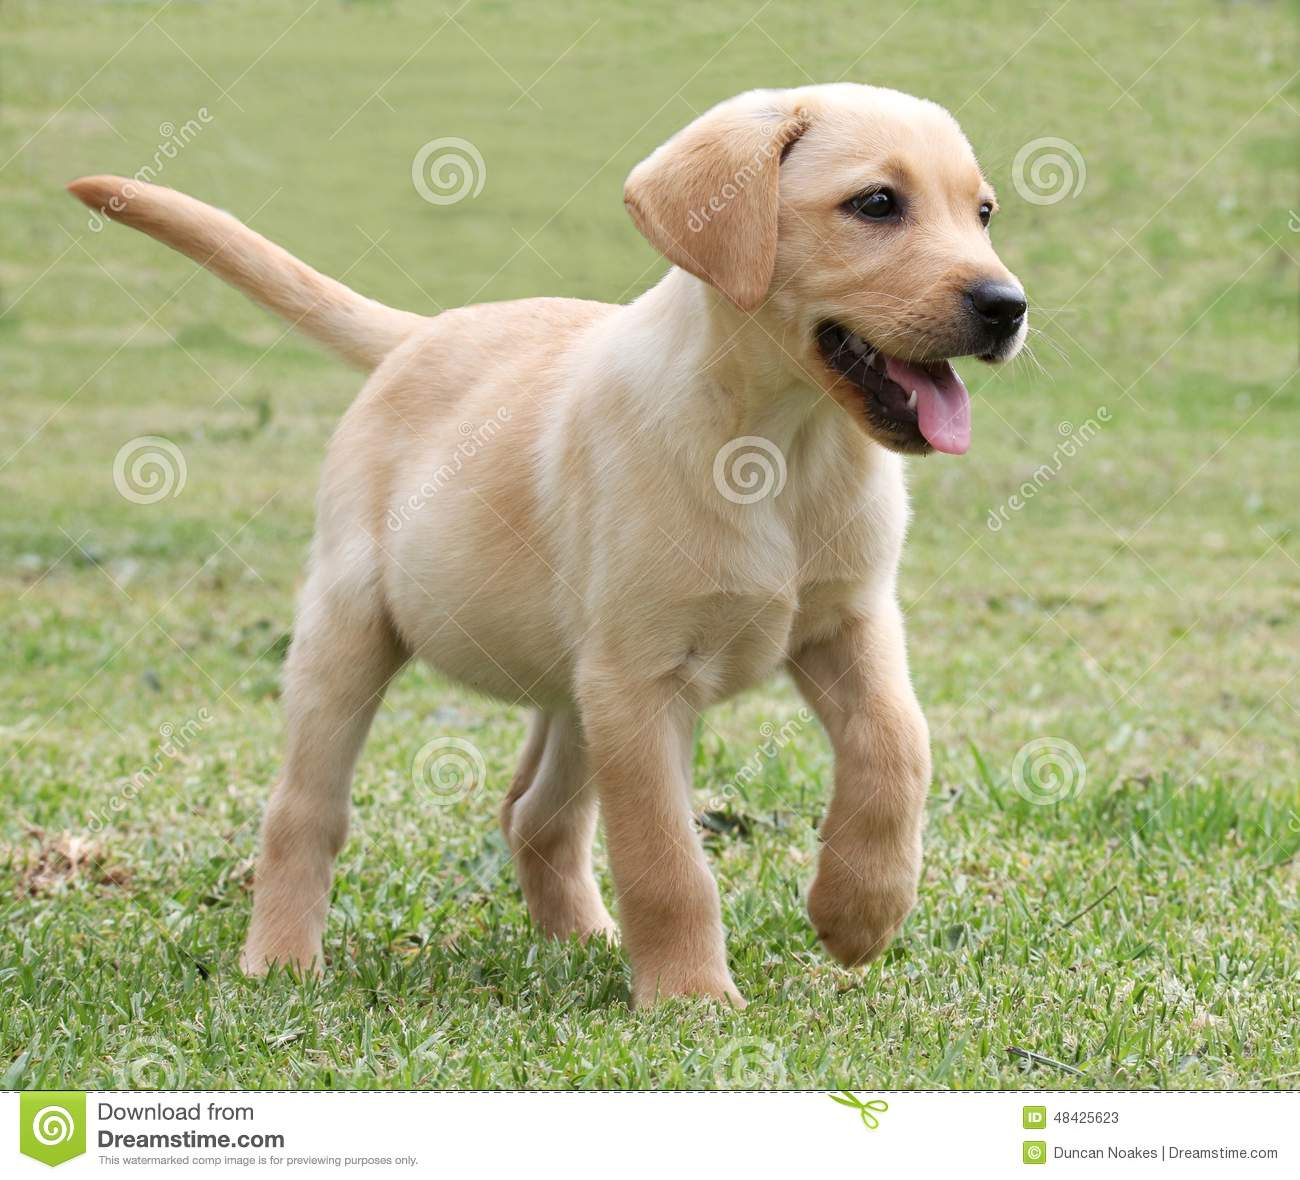 Black Lab Dog Running Adorable Labrador Puppy On Green Grass Stock Image Image